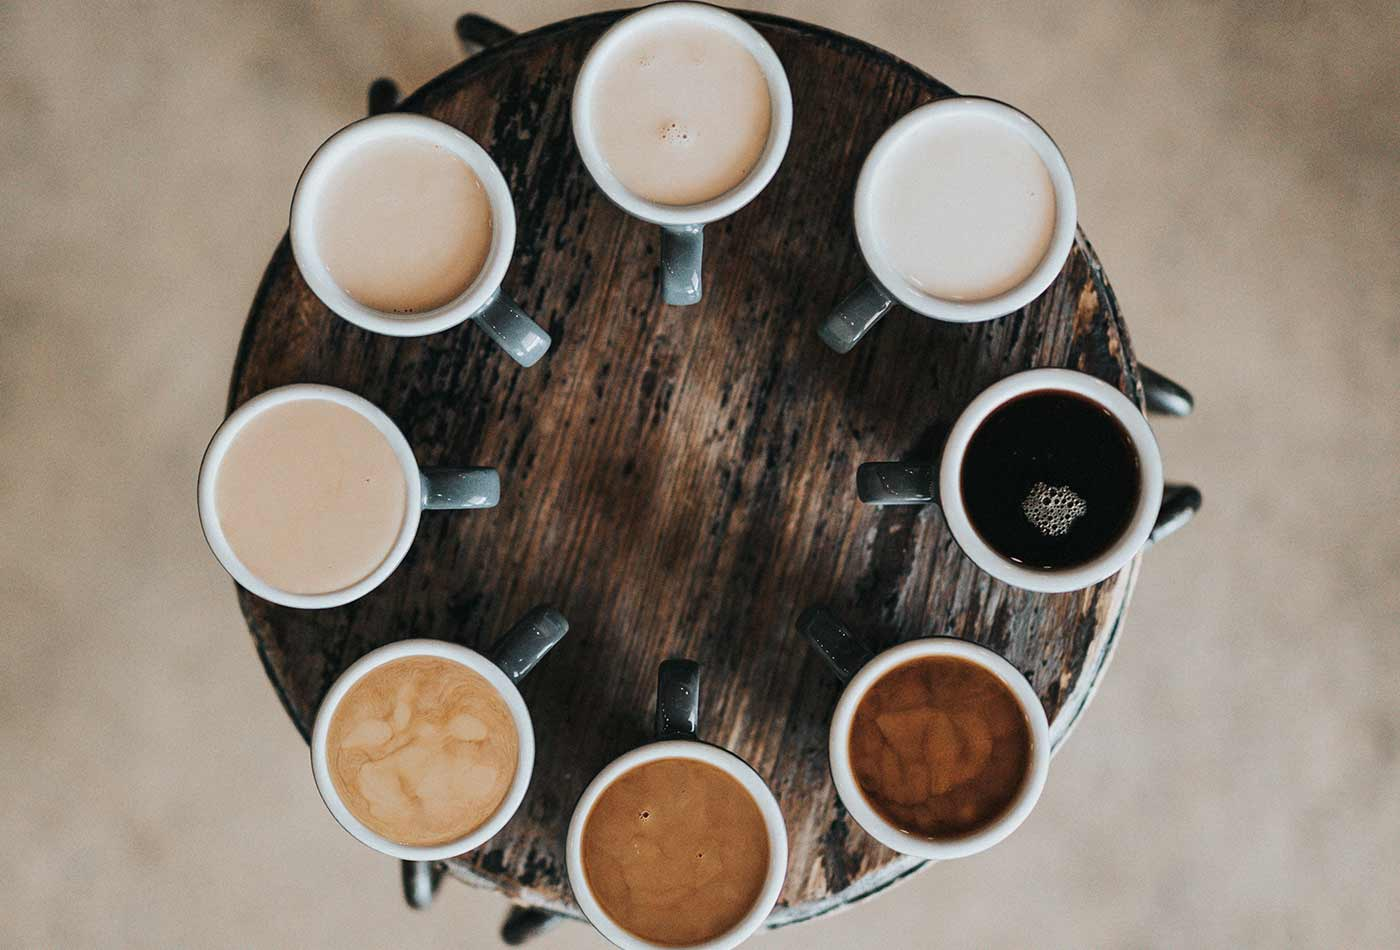 How many cup of coffee you should drink per day?